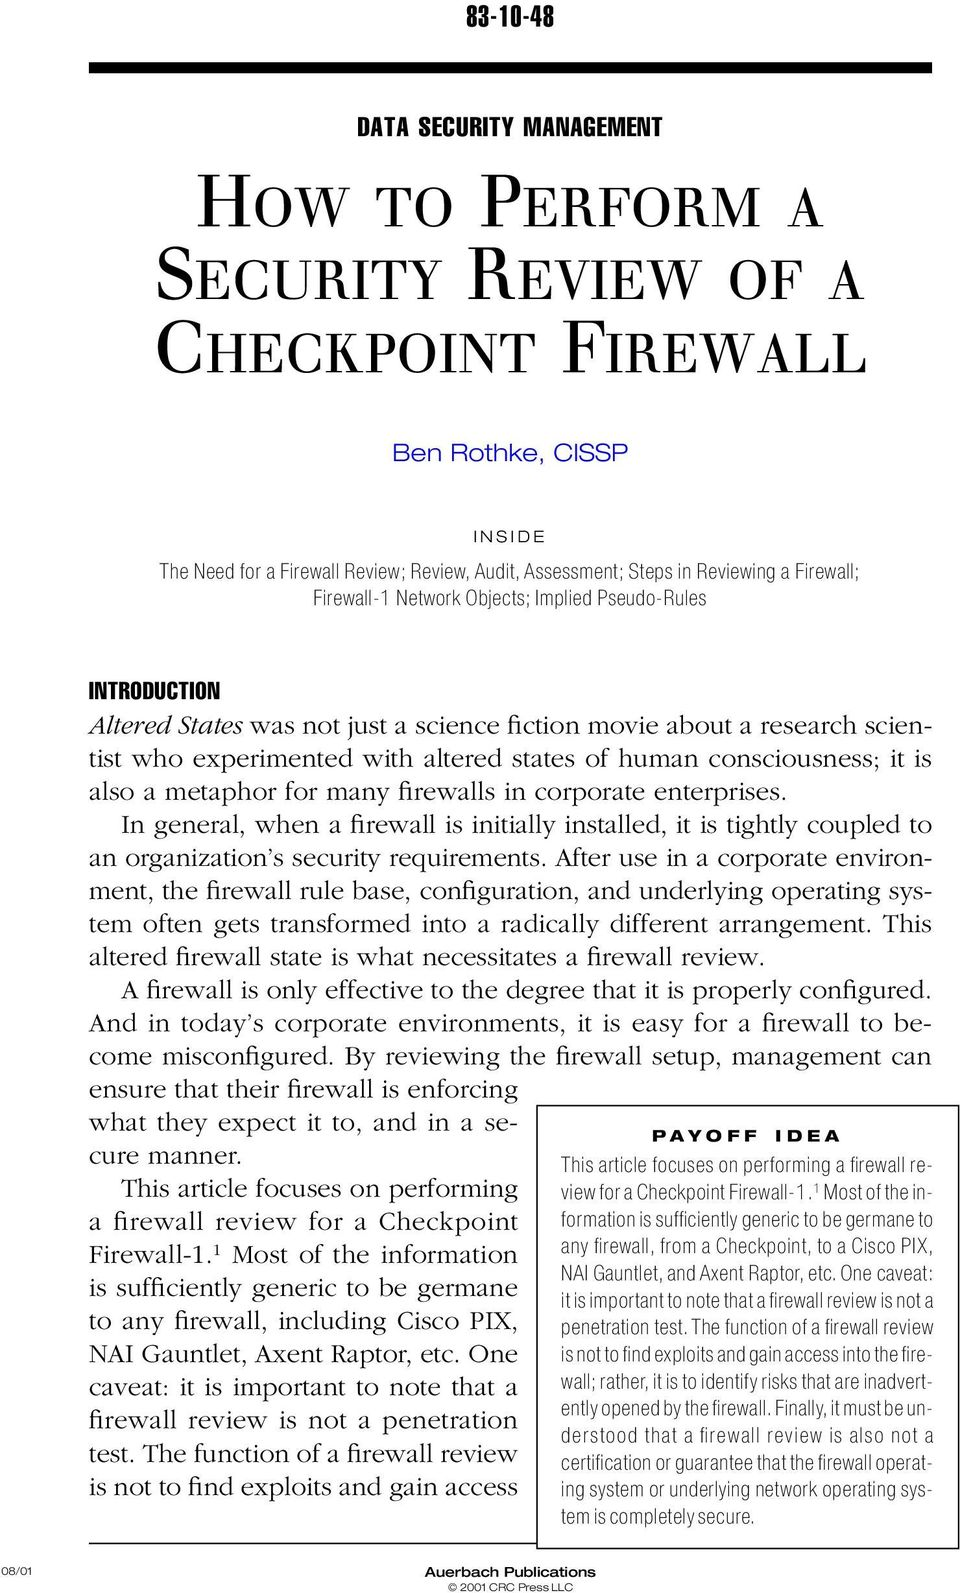 consciousness; it is also a metaphor for many firewalls in corporate enterprises. In general, when a firewall is initially installed, it is tightly coupled to an organization s security requirements.